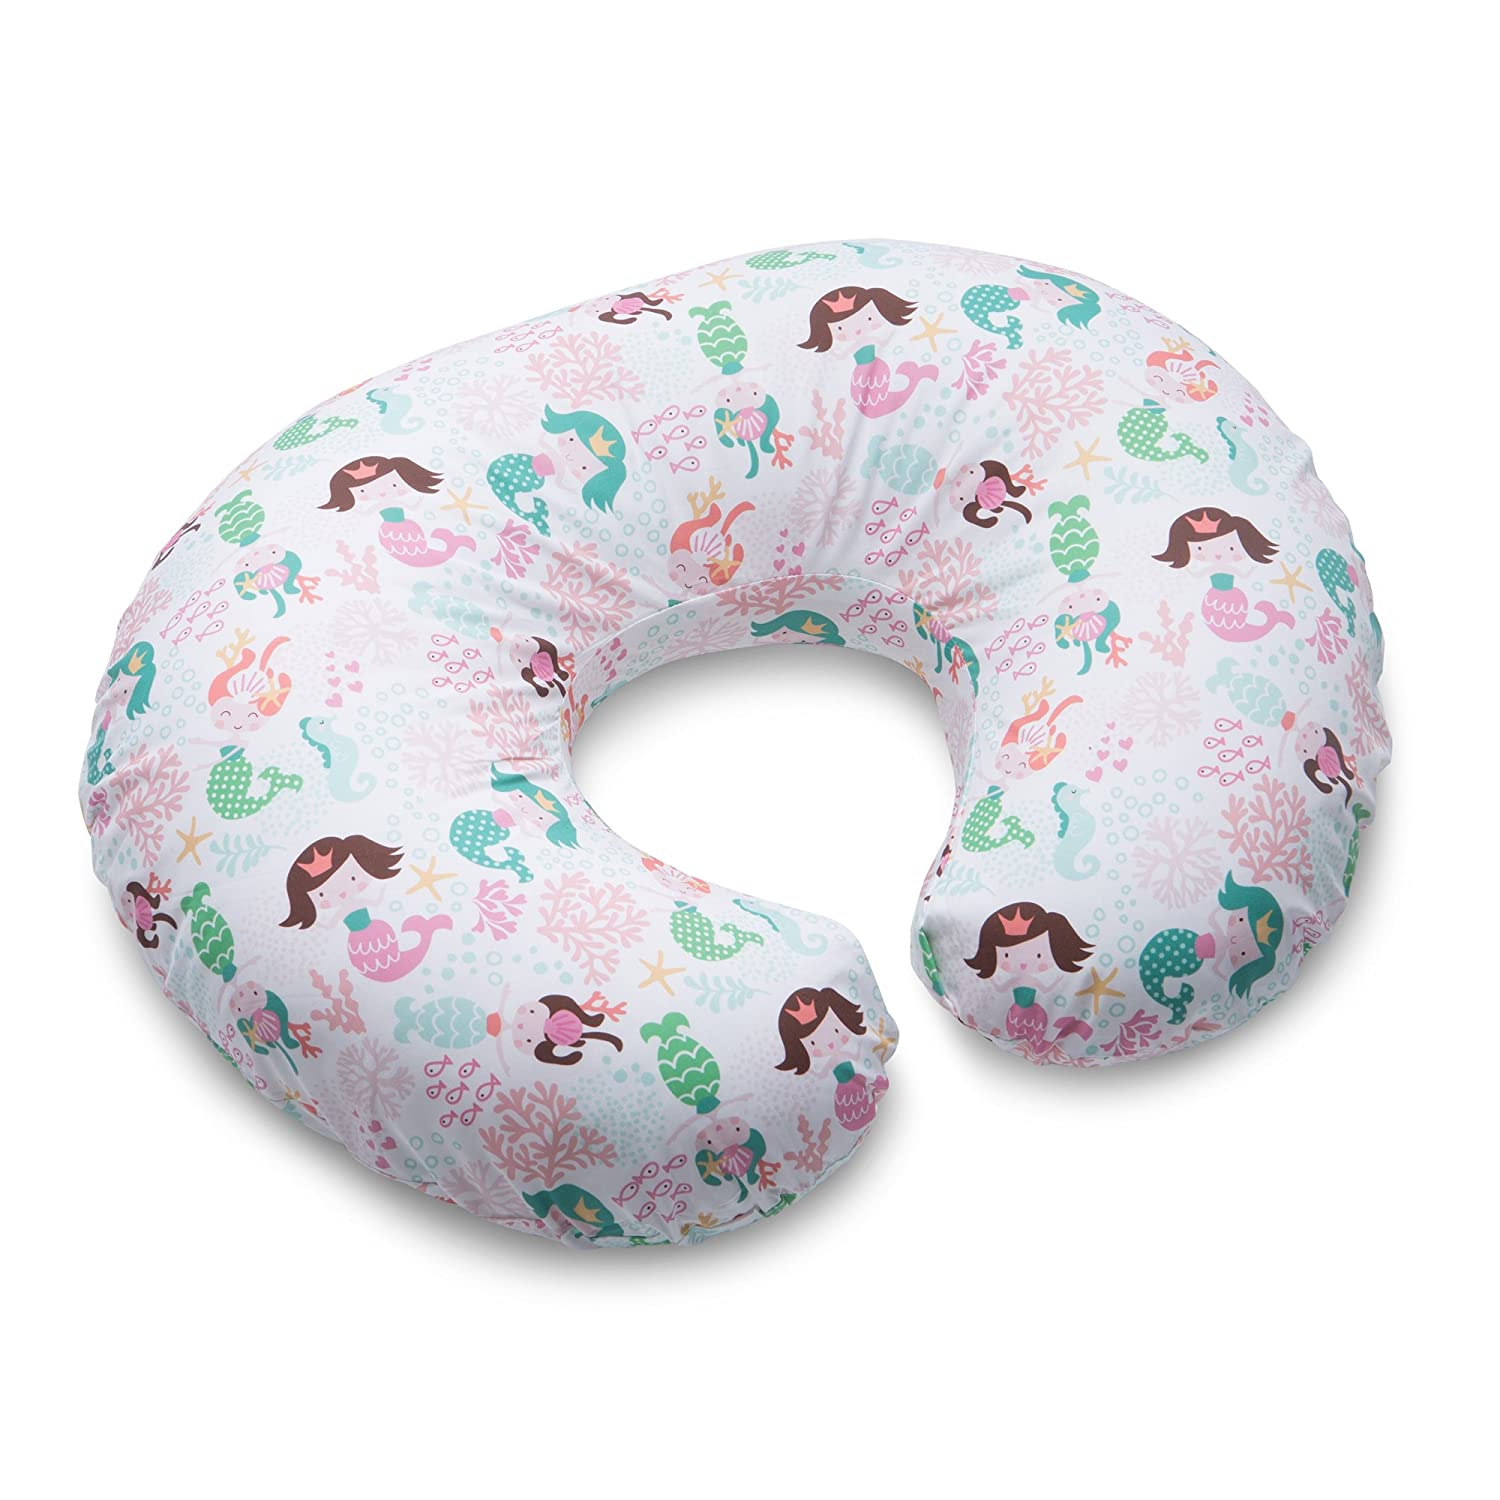 Boppy Pillow Slipcover, Classic Mermaids, Pink The Boppy Company 3100151K 6PK